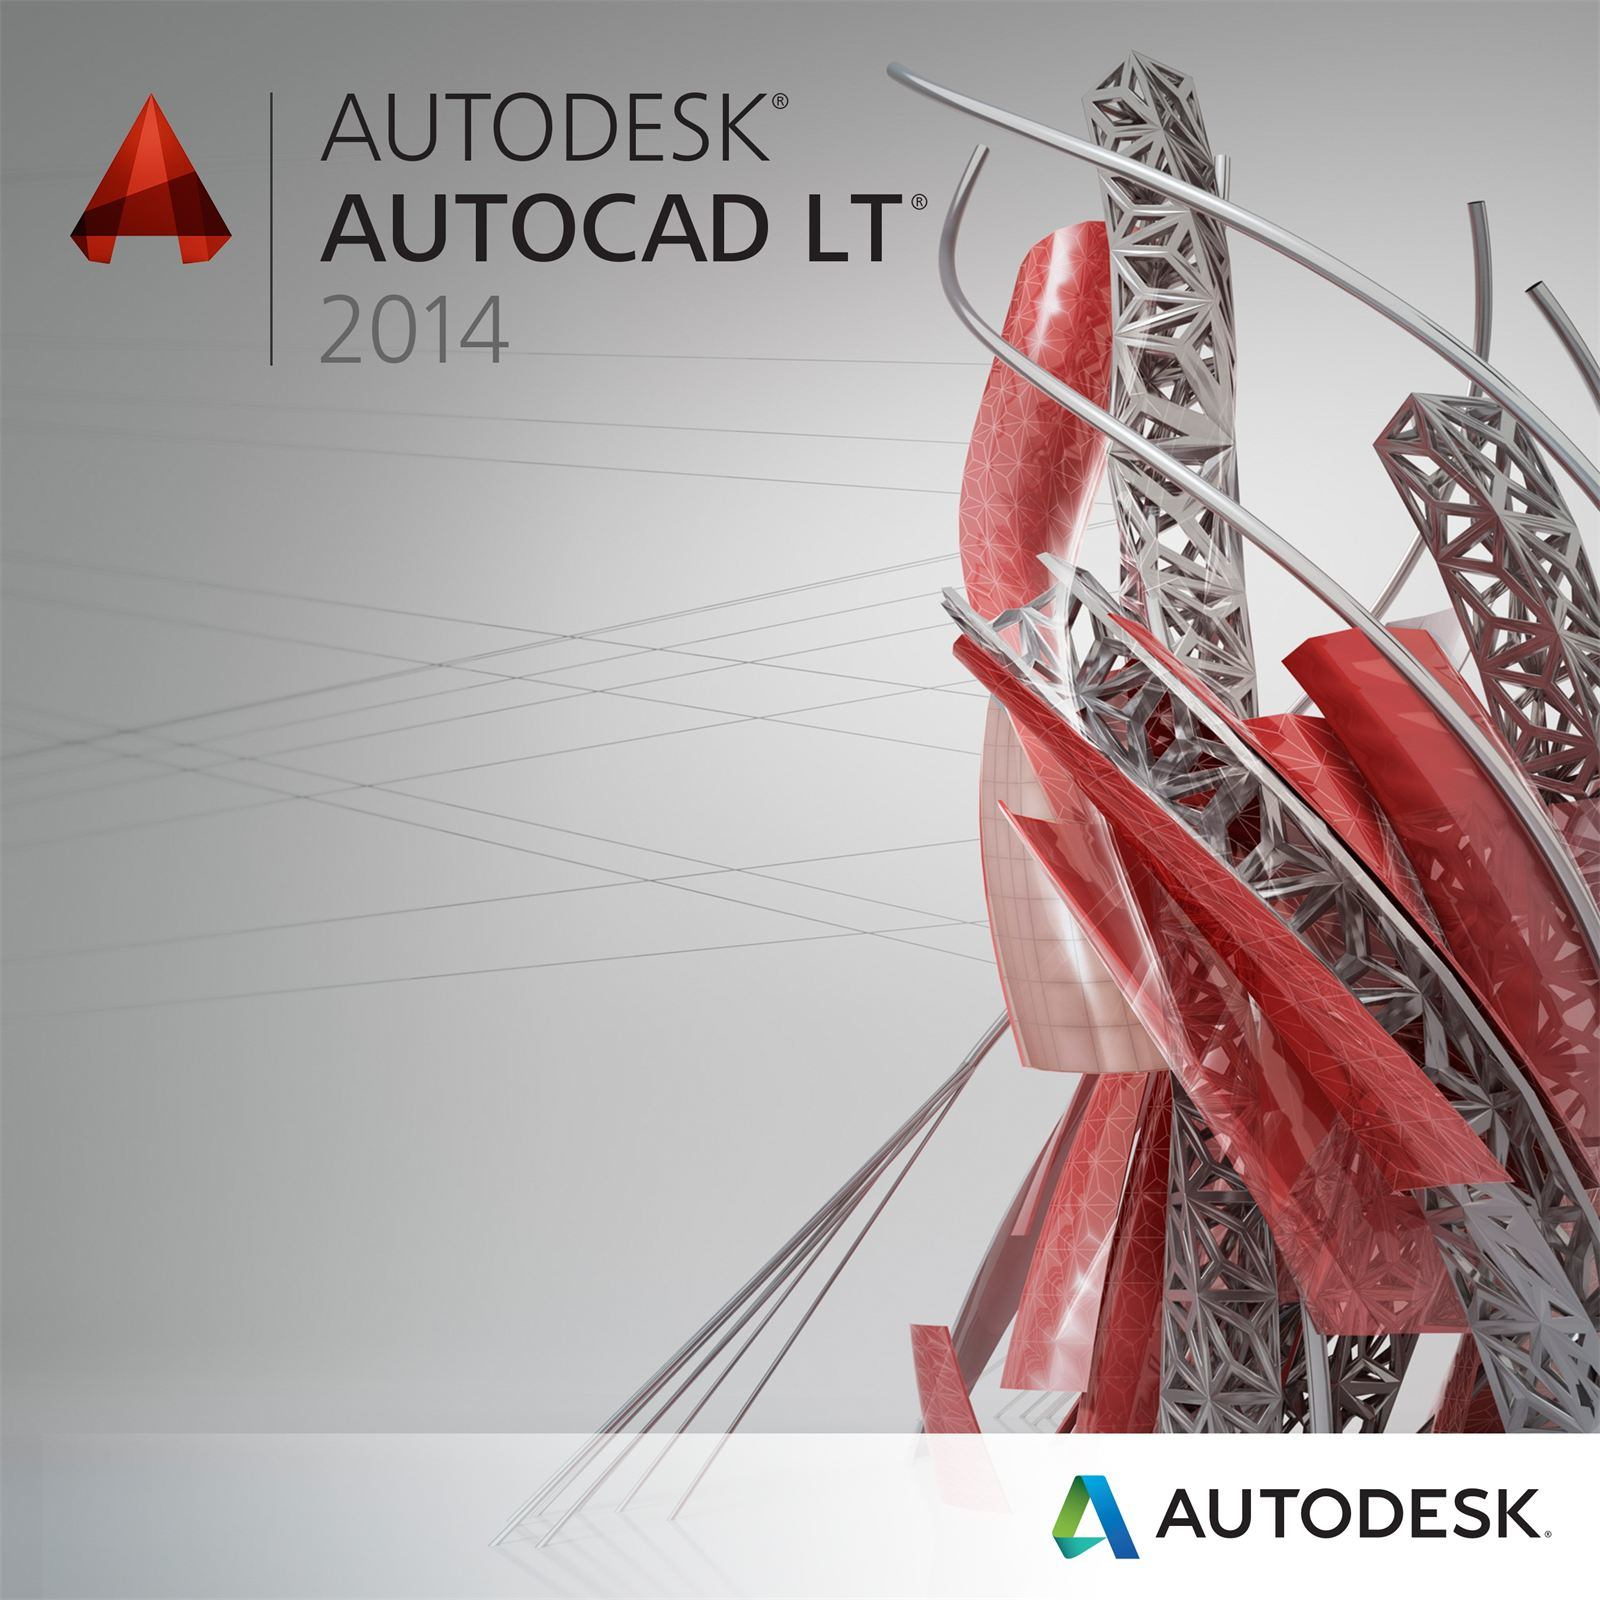 2022026-Autodesk-AutoCAD-LT-AutoCAD-LT-Commercial-Maintenance-Plan-with-Advance miniatura 1